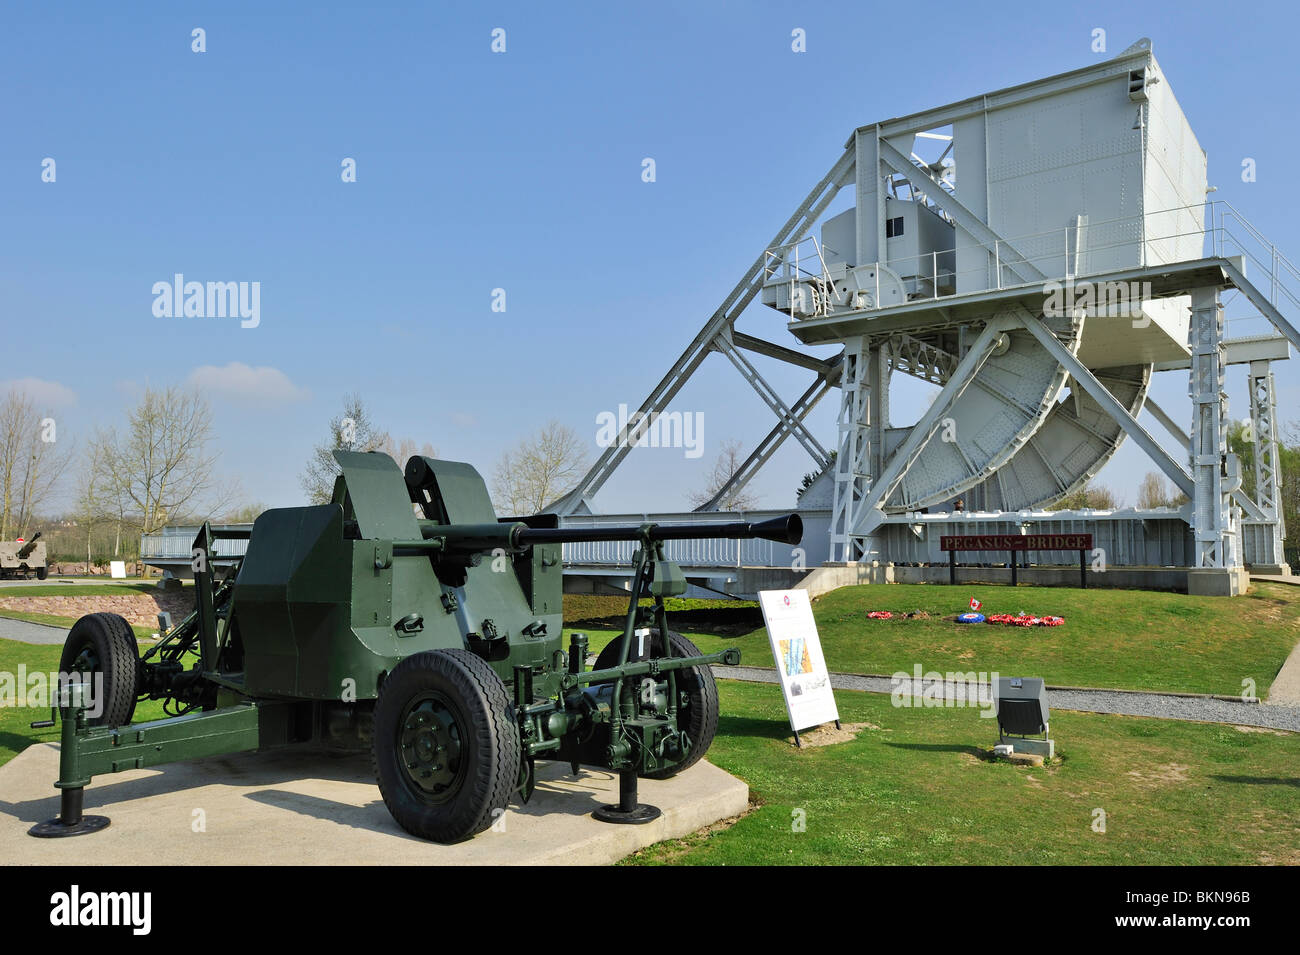 WW2 cannon and original Bénouville Bridge at the Pegasus Museum near Ouistreham, Normandy, France - Stock Image